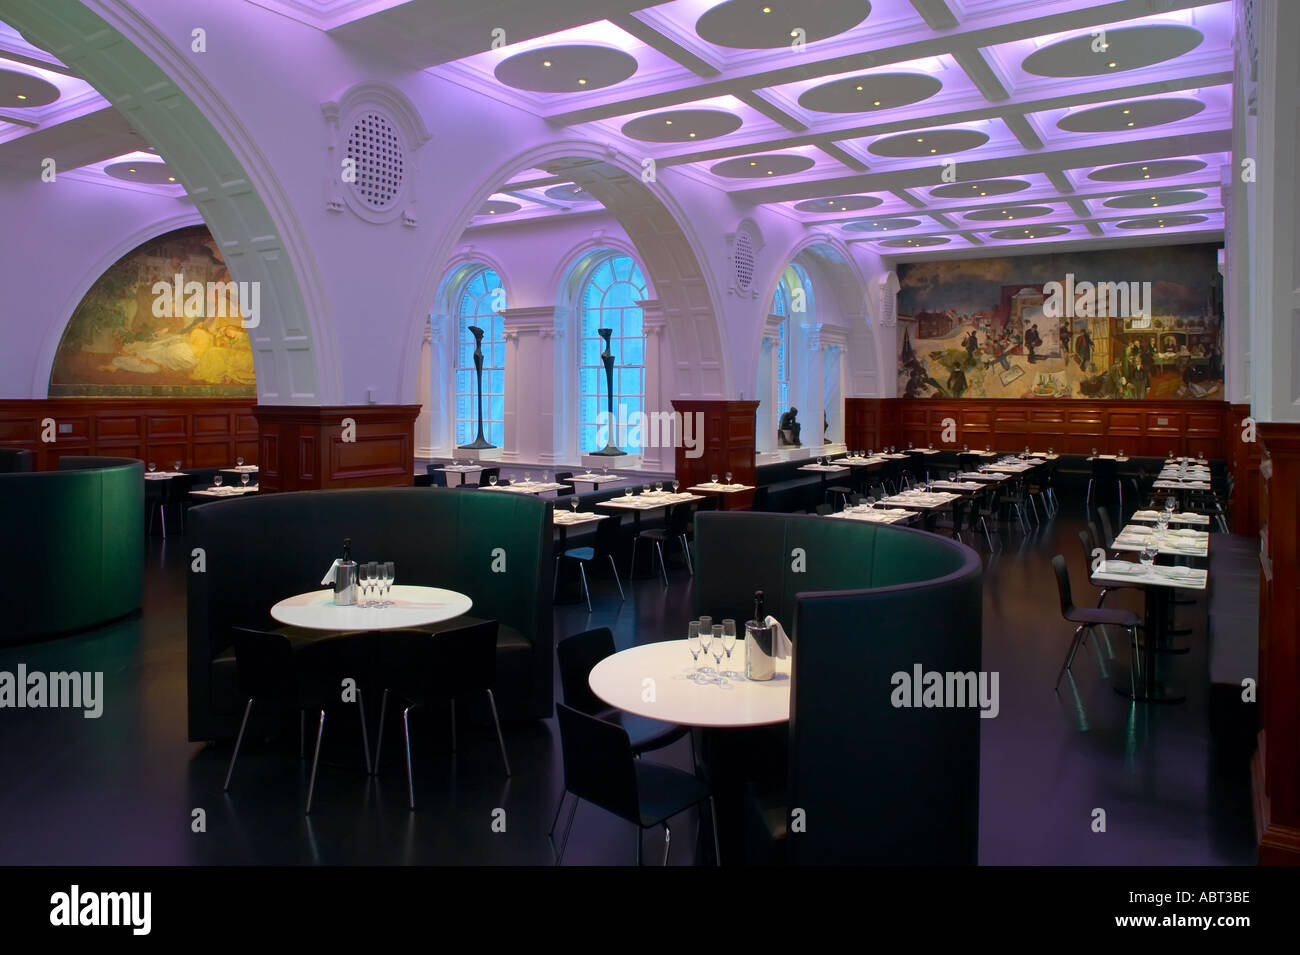 royal academy of arts restaurant, burlington house, london